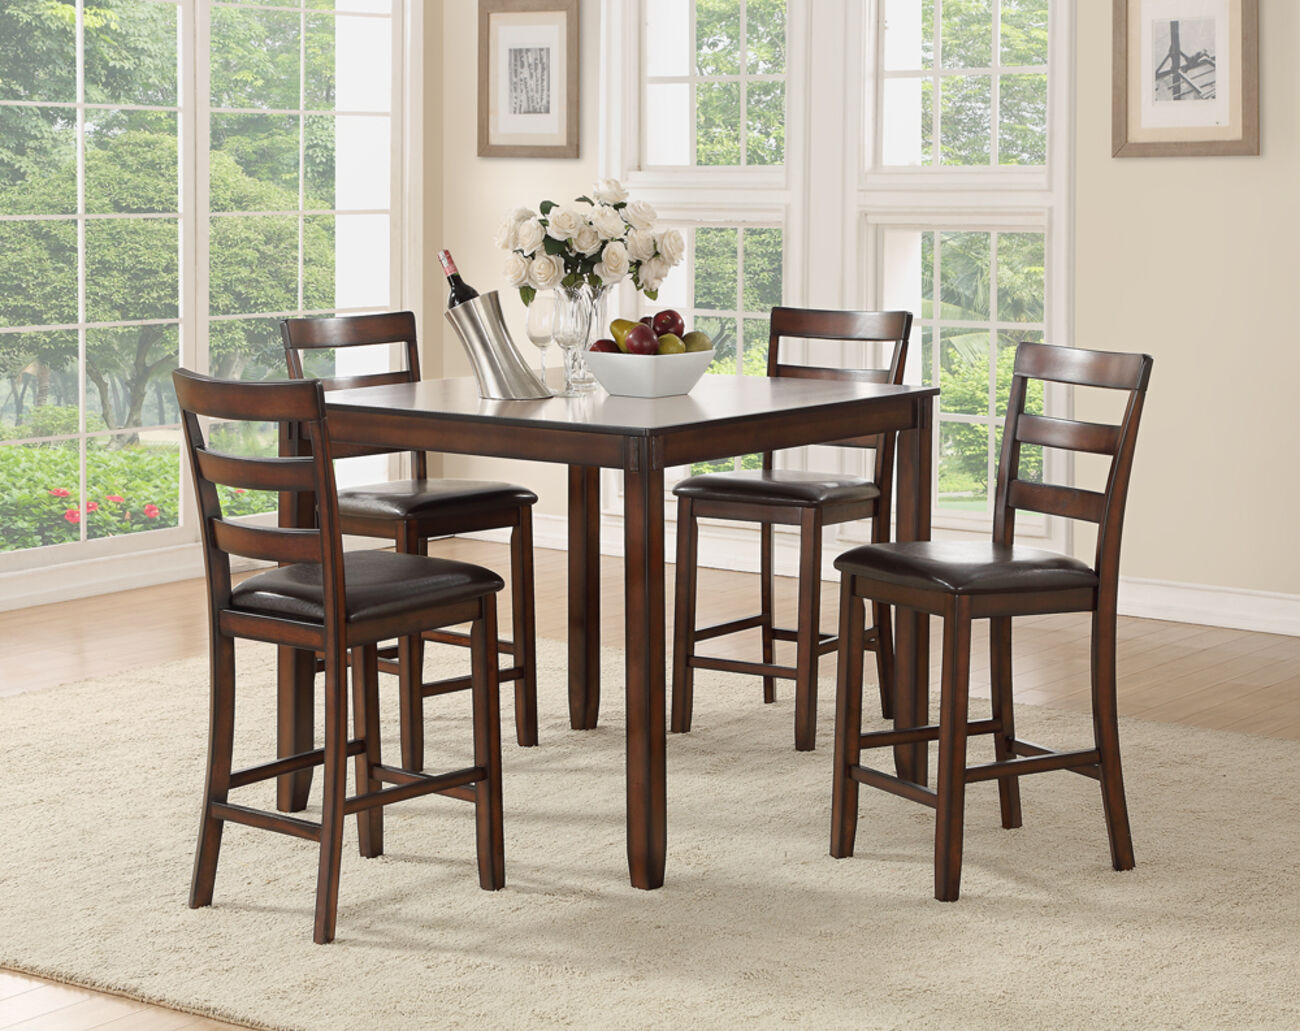 Wooden 5 Pieces Counter Height Dining Set In Brown